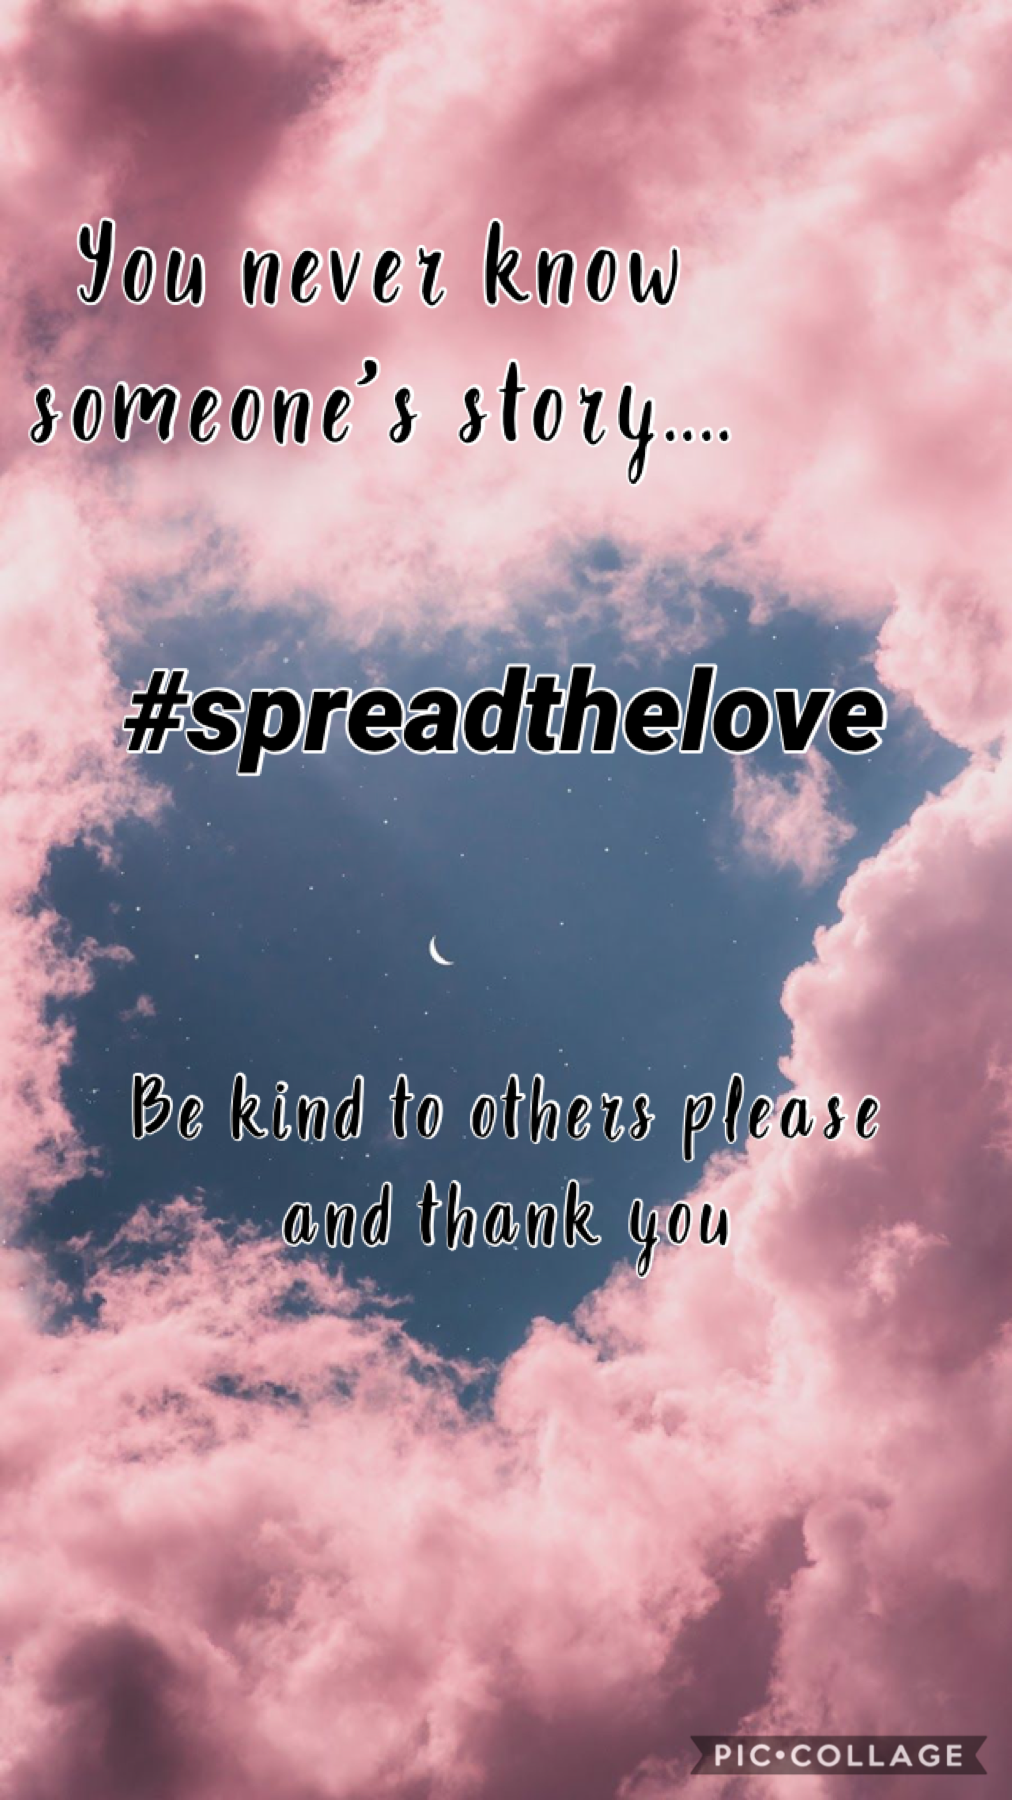 #spreadthelove ~Tap~  I see people bring other people bringing others down all the time, even just a small word can have a big impact. Be kind and Spread The Love 💗